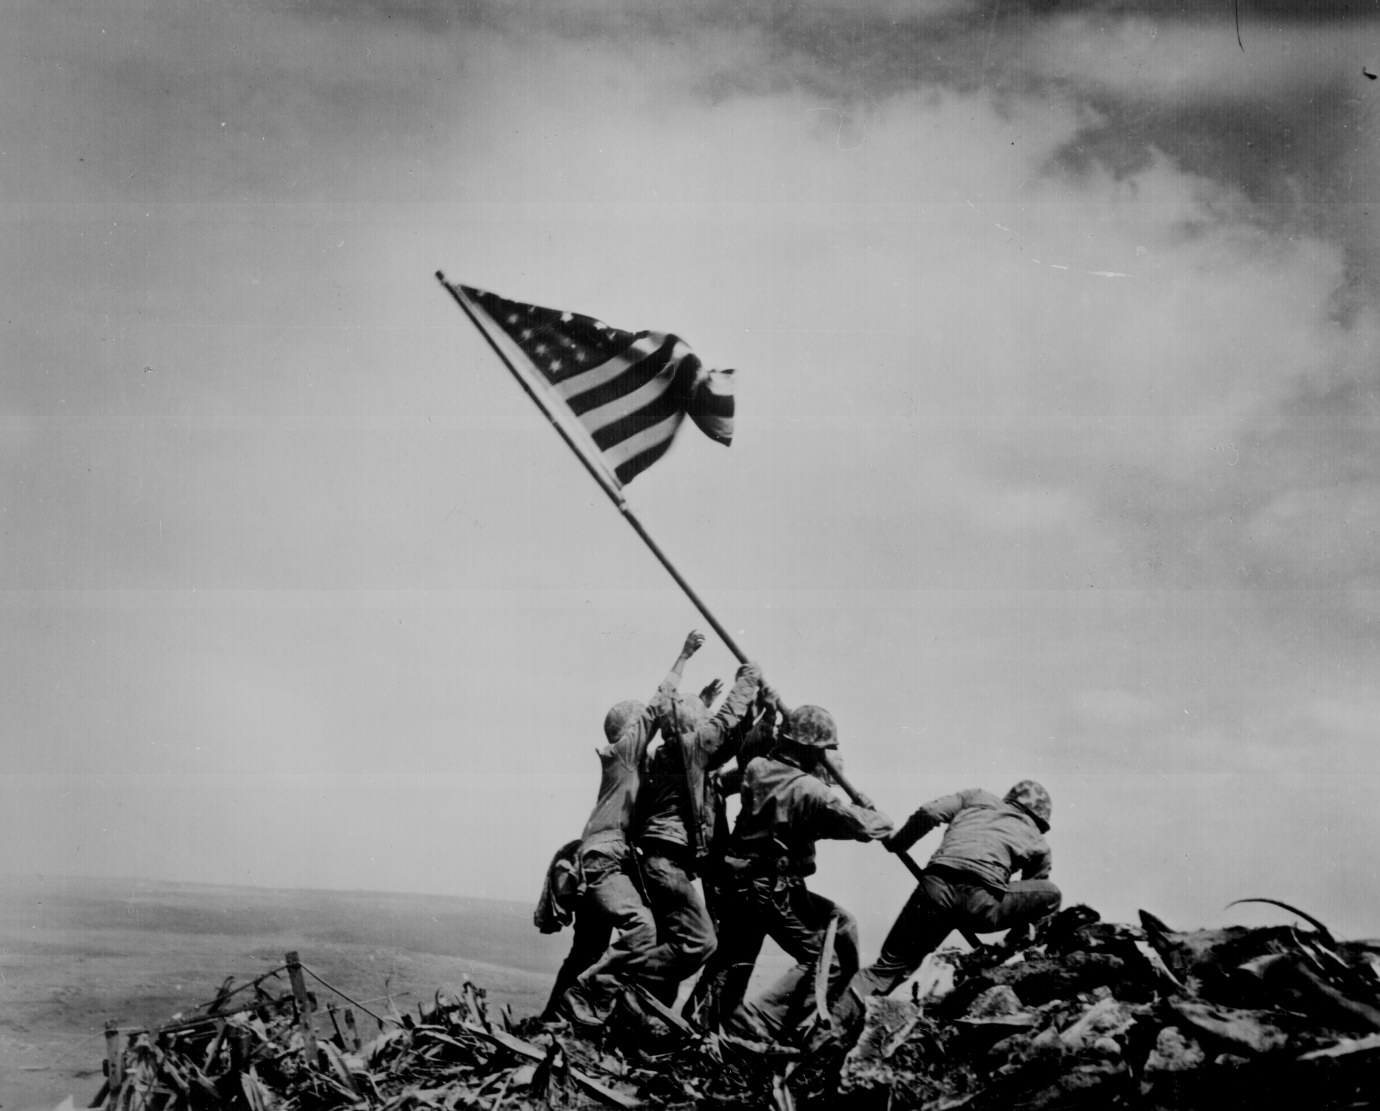 Raising the US flag atop Mount Suribachi, by Joe Rosenthal, Iwo Jima, 23 Feb 1945. (US National Archives: 80-G-413988)